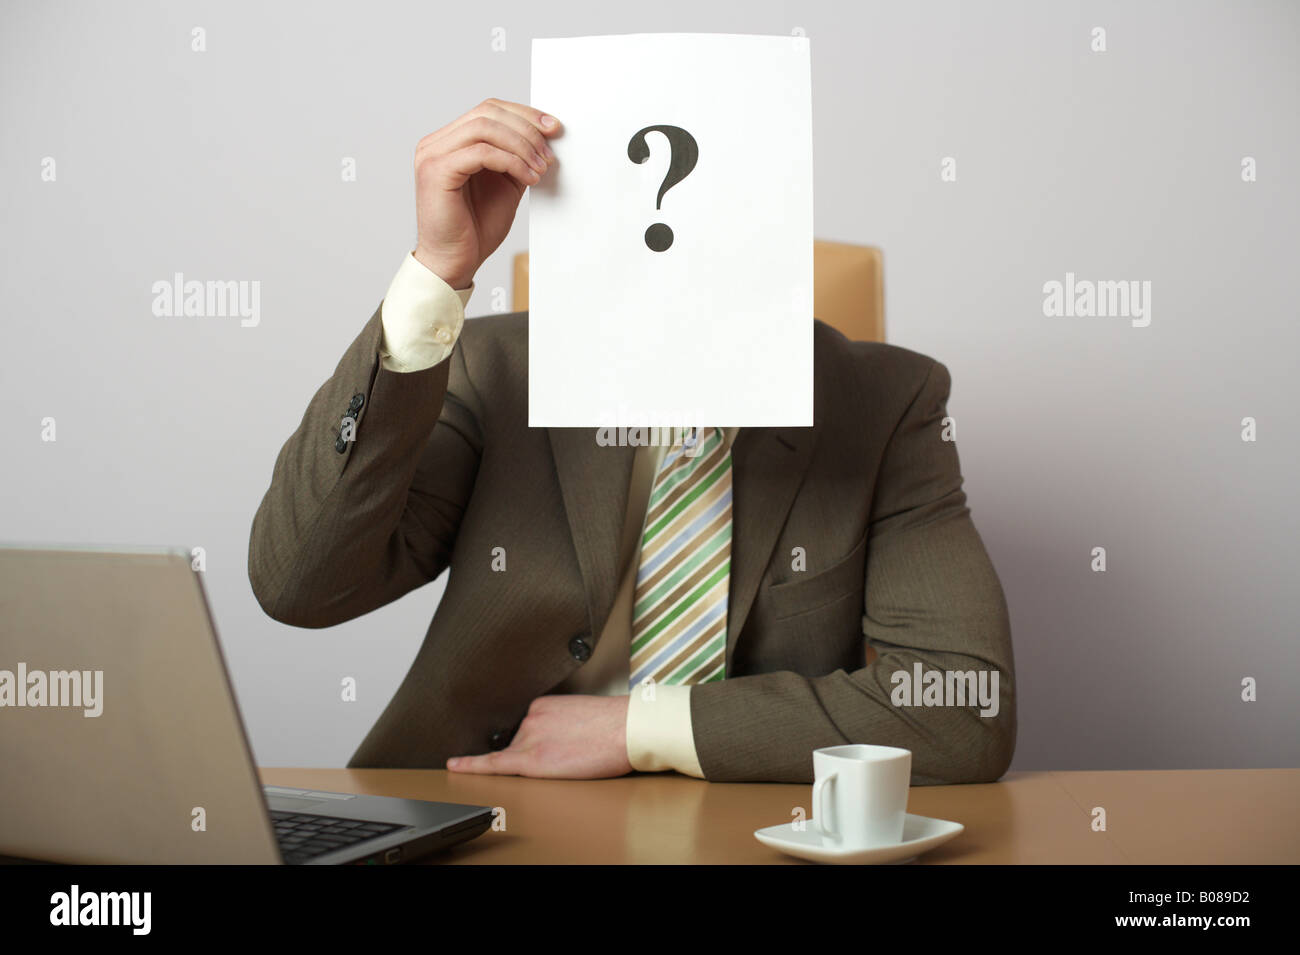 Question mark on a sheet of paper covering businessman's face - Stock Image